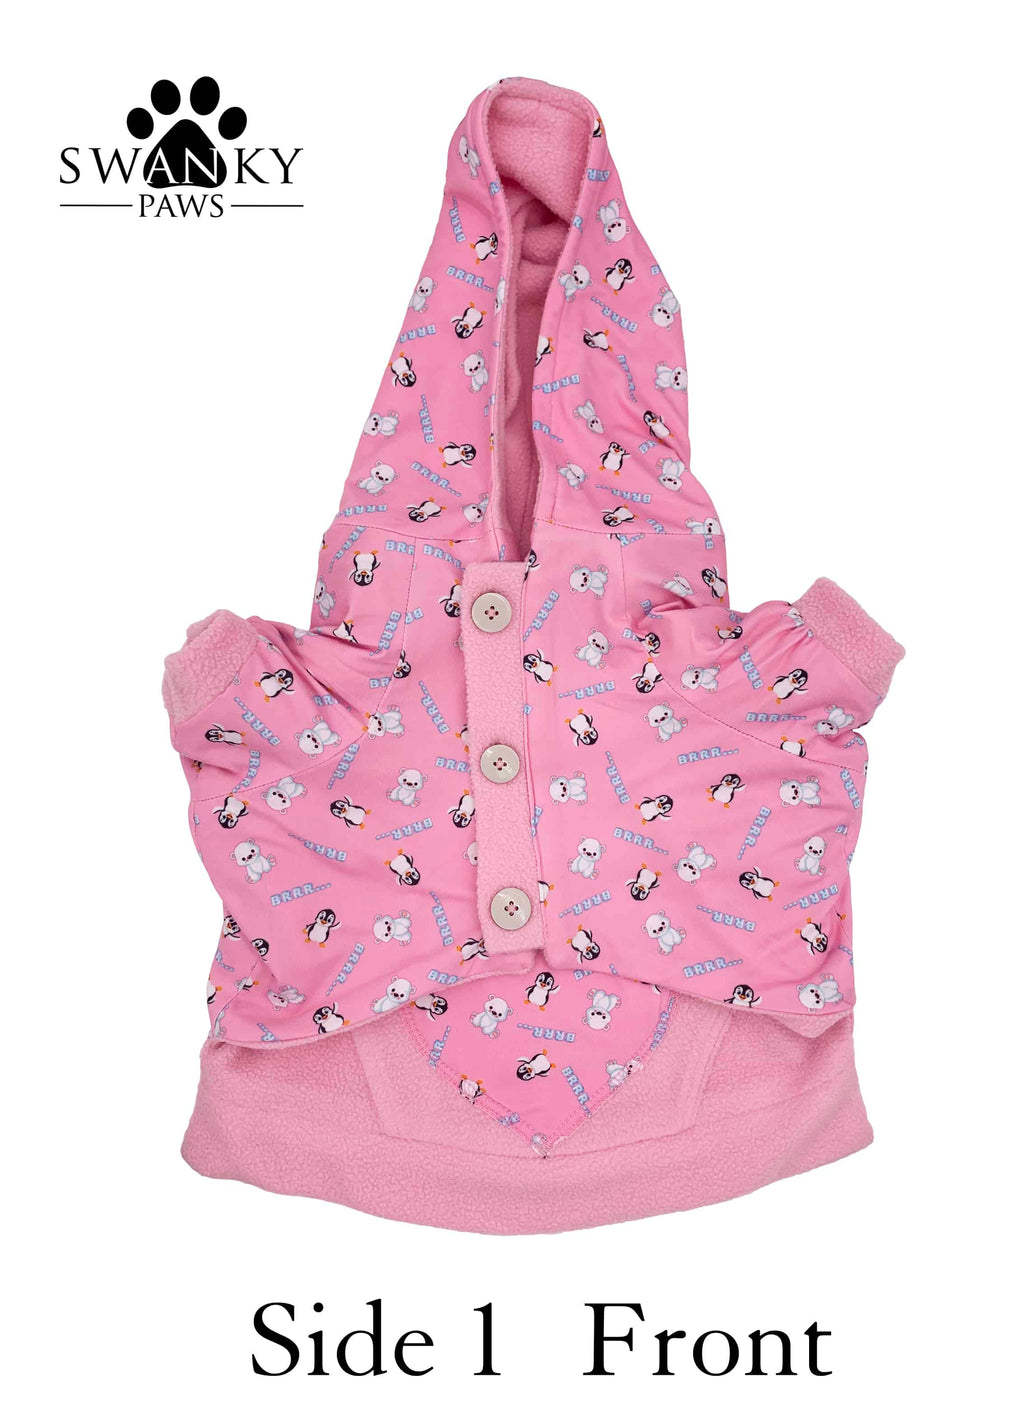 Swanky Paws Pink Reversible Dog Hoodie with a winter print and pink fleece. It has 3 buttons for fastening on either side and is completely reversible. Made by hand in Australia by Swanky Paws